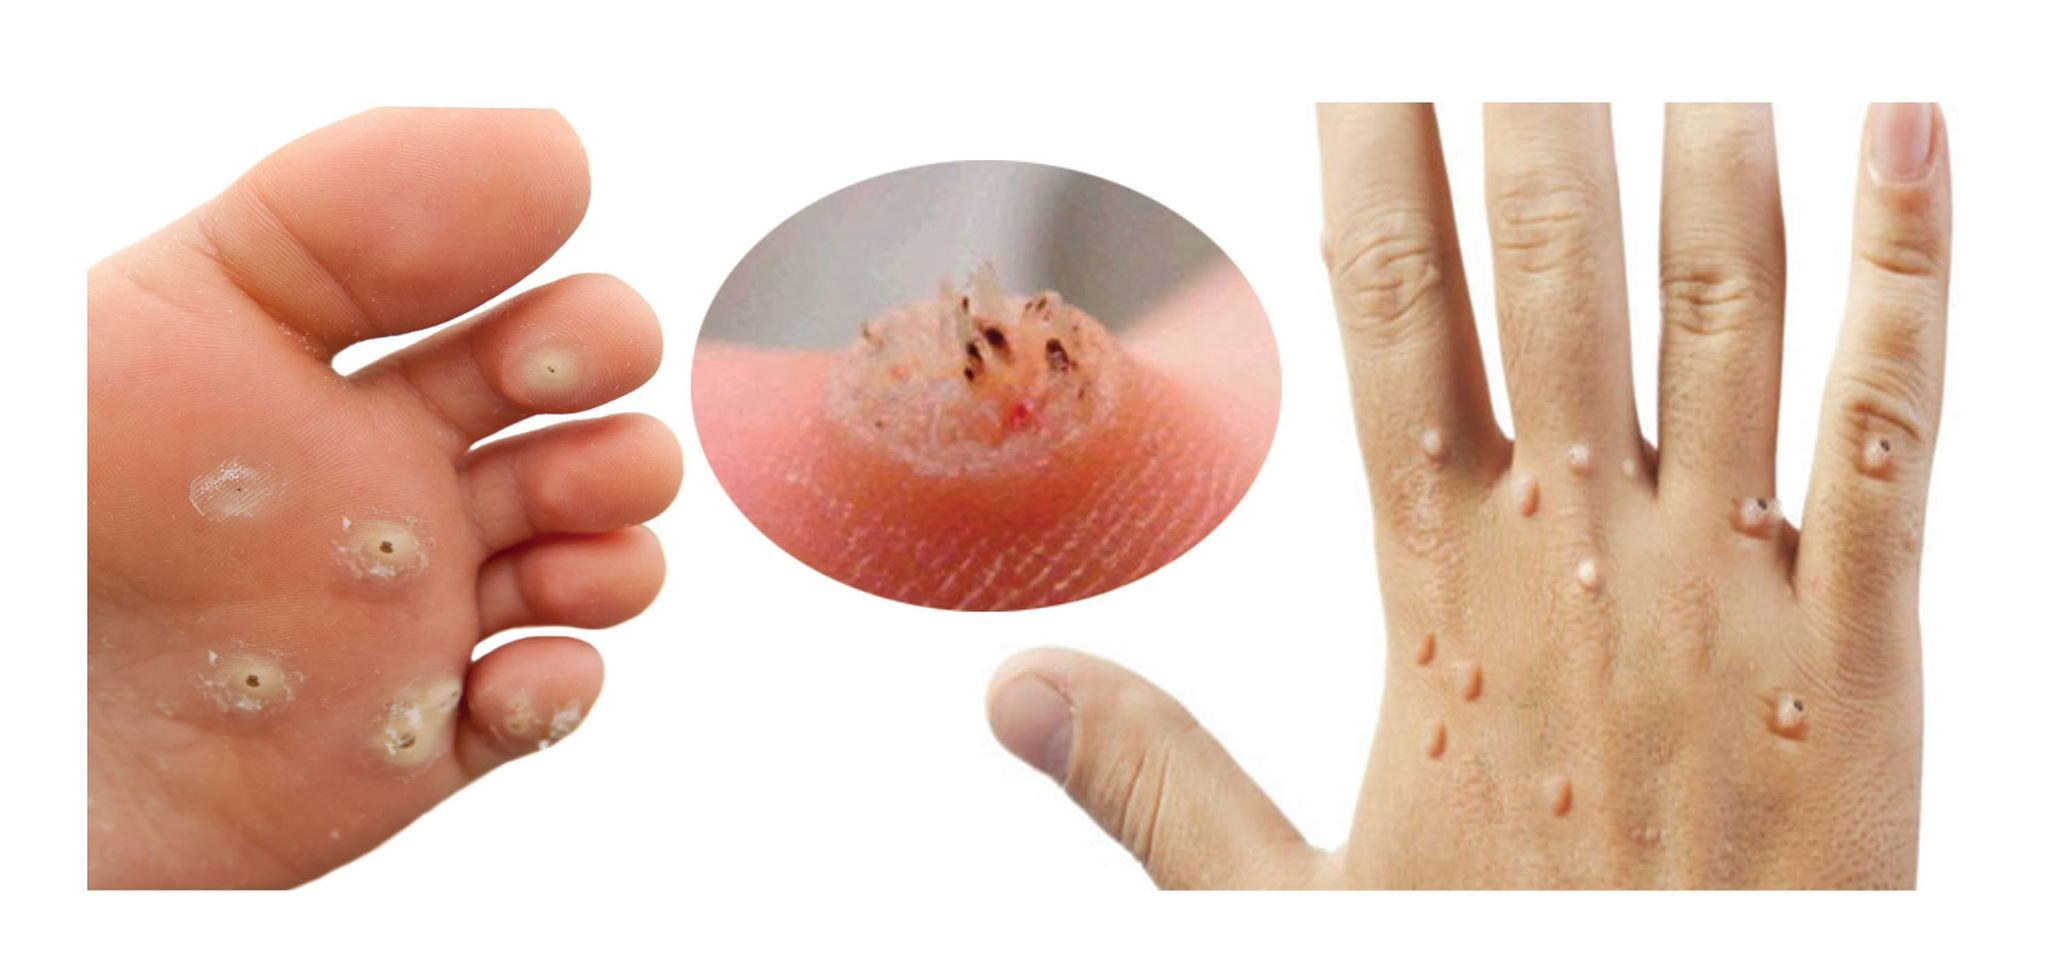 Why do warts appear